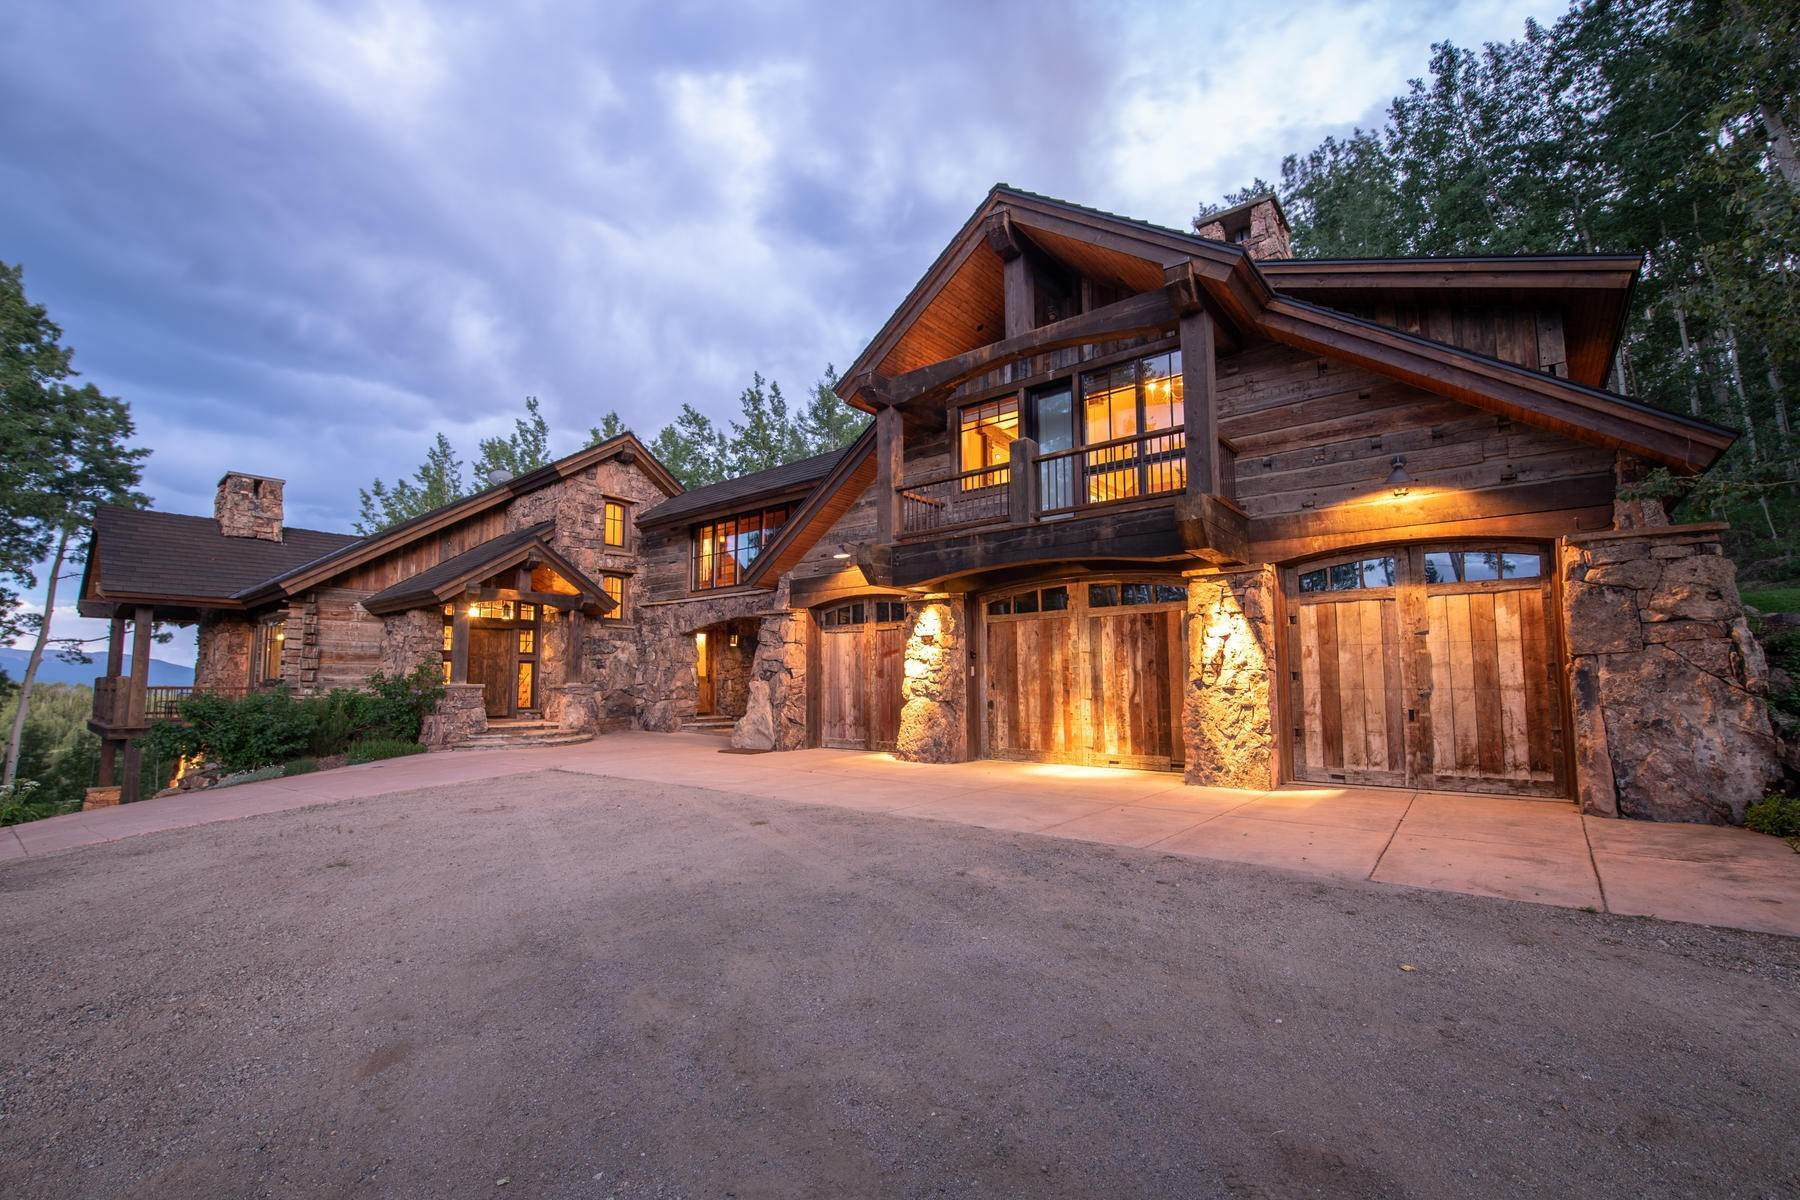 Single Family Homes for Active at Breathtaking Home in Red Mountain Ranch 1515 Red Mountain Ranch Road Crested Butte, Colorado 81224 United States